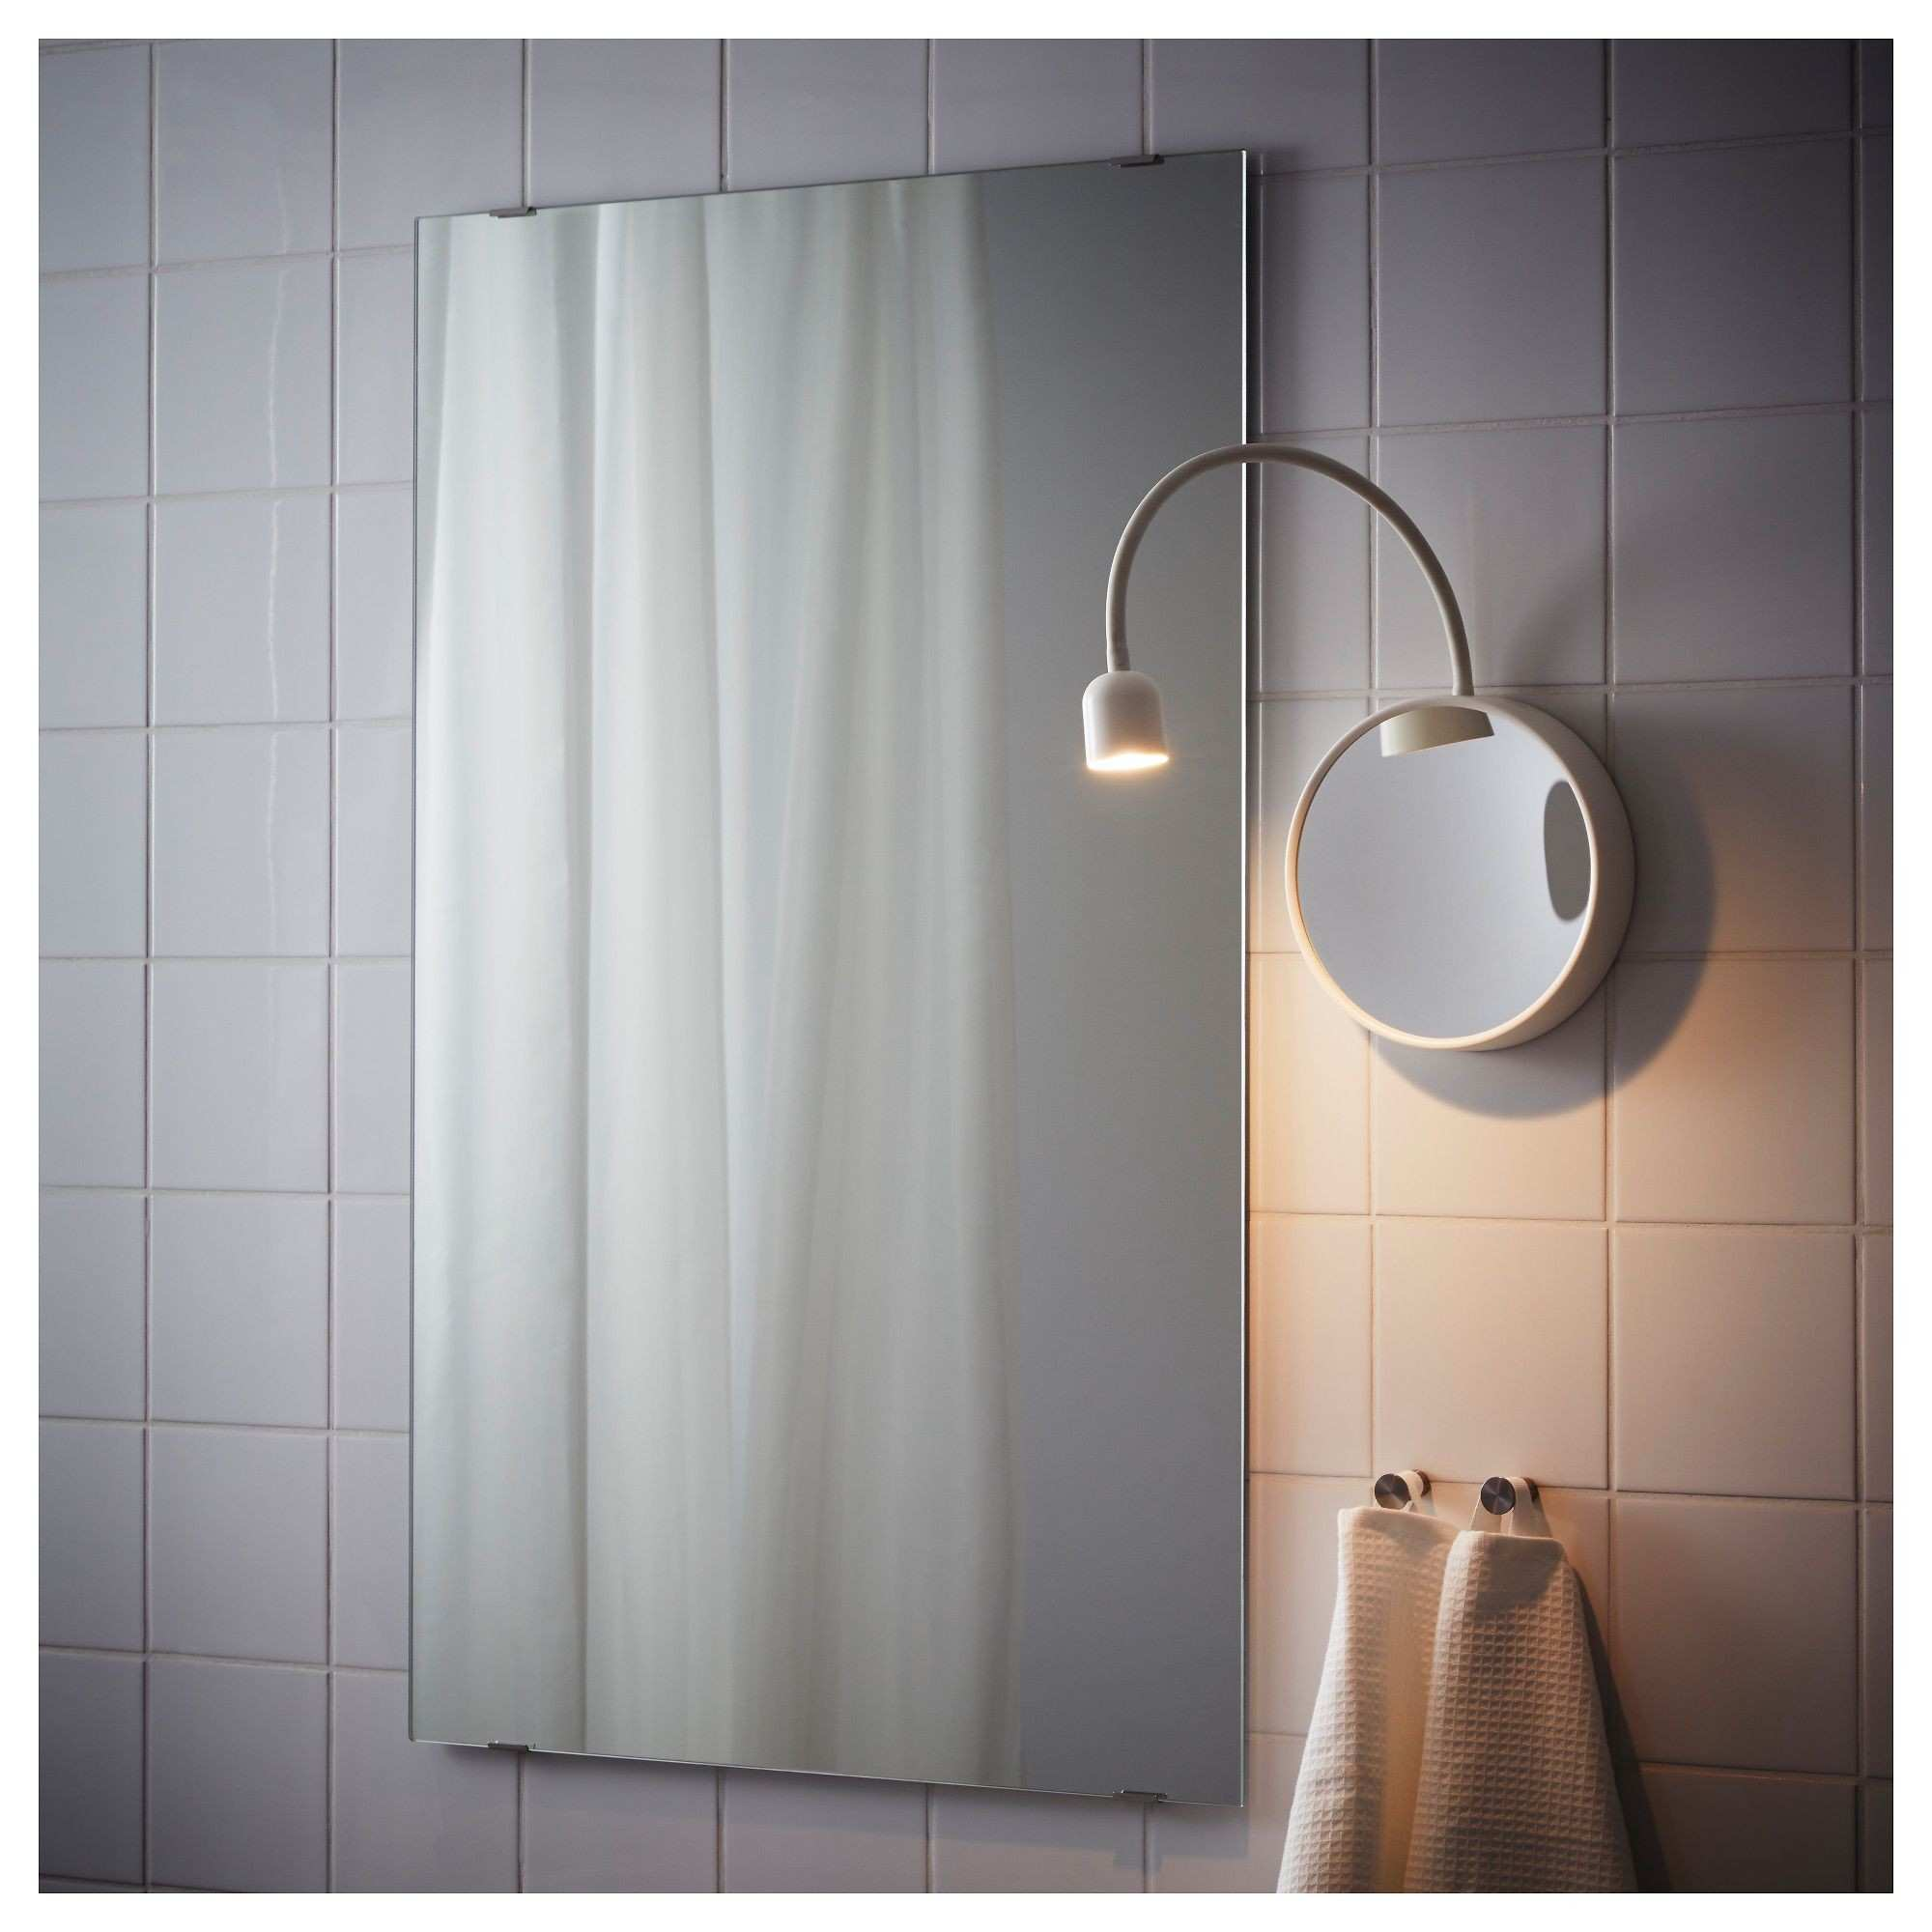 Ikea Led Lampen Auf Gut Bl…vik Led Wall Lamp with Mirror Battery